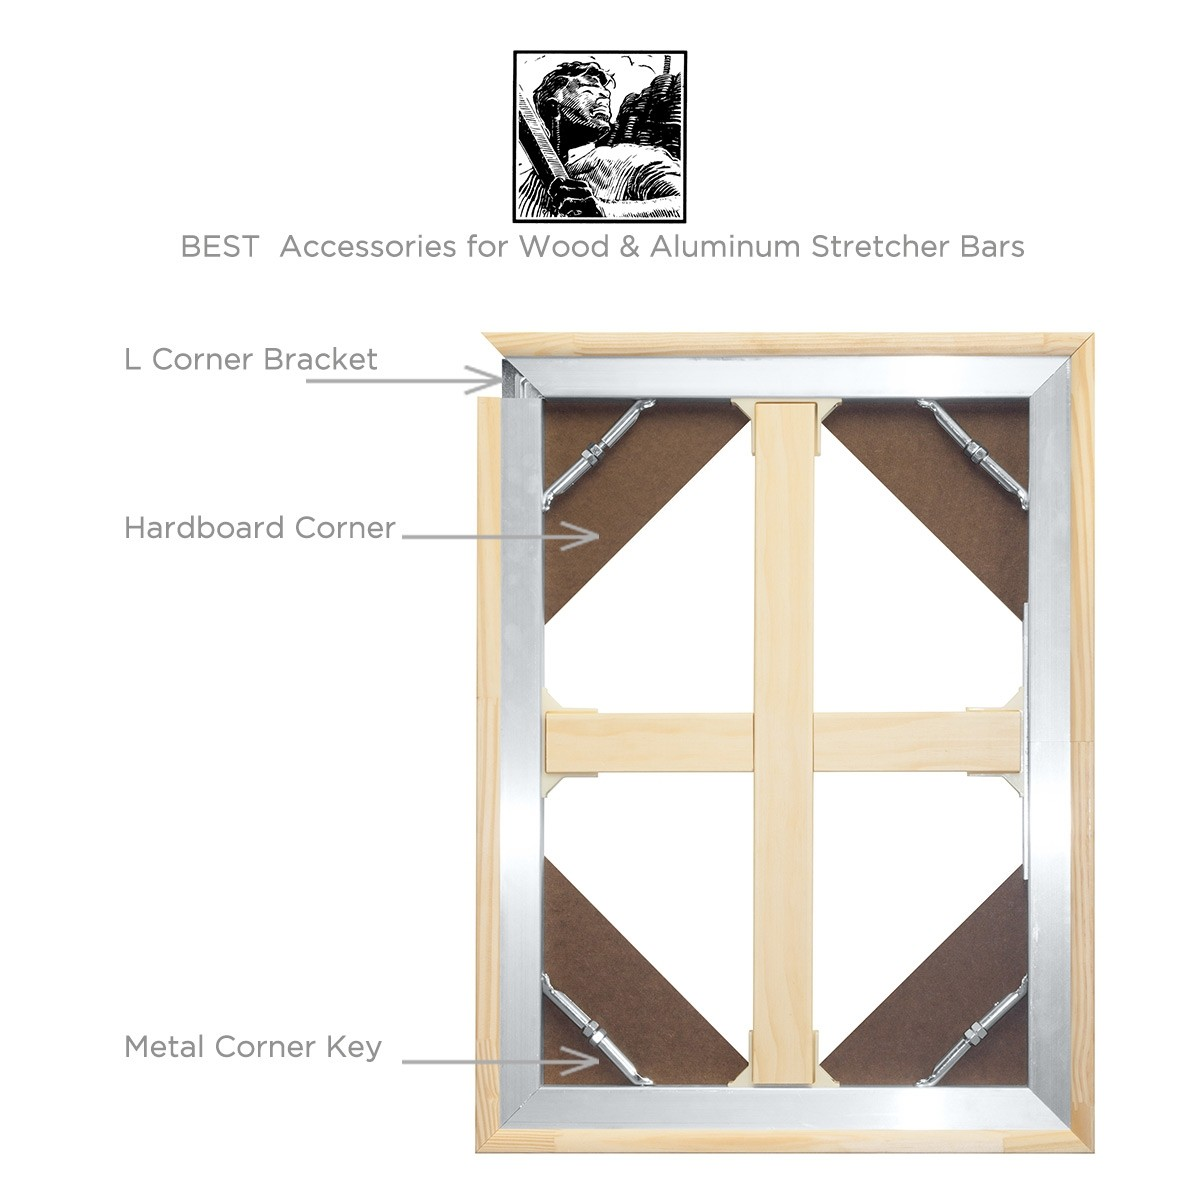 hight resolution of the best accessories for wood and aluminum stretcher bars